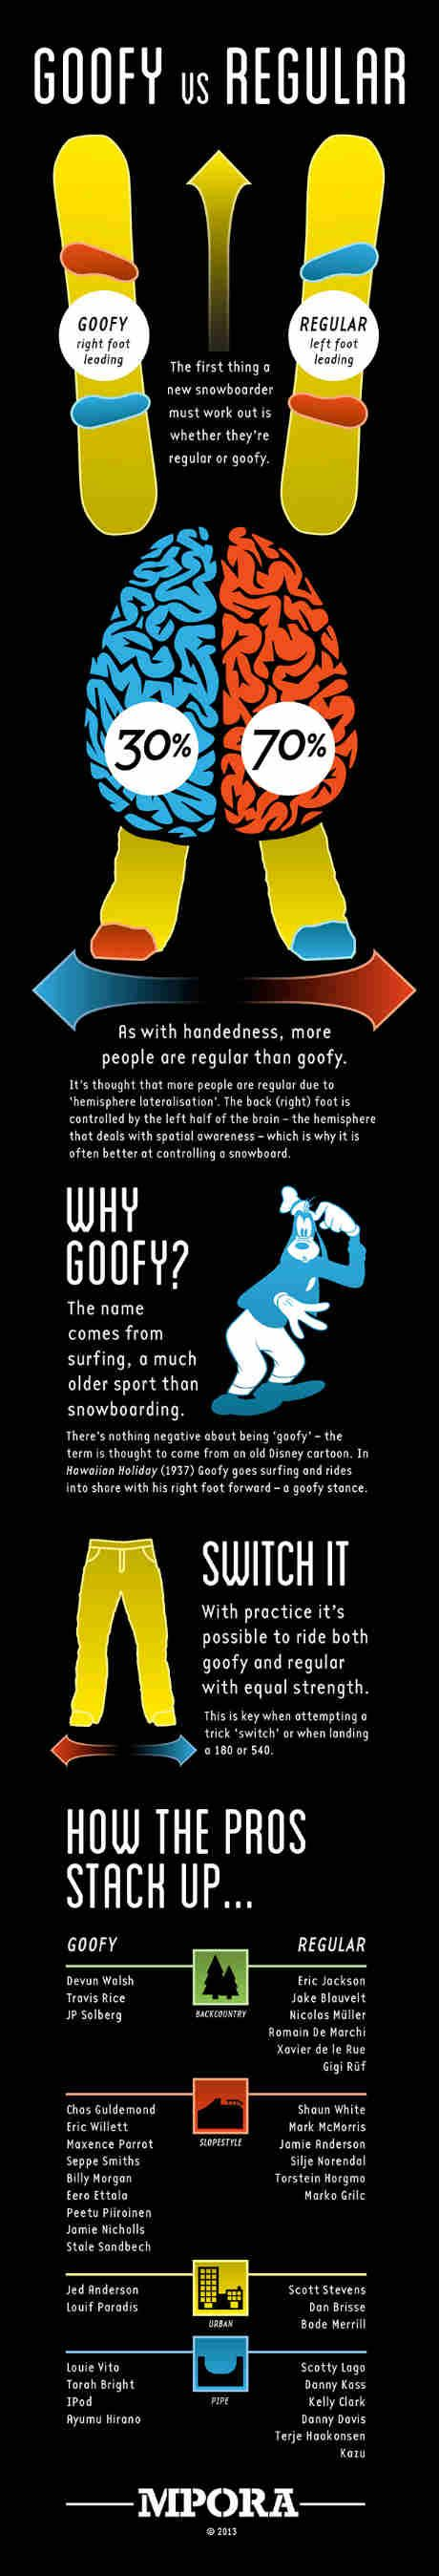 Goofy Snowboard Stances—What's the Deal? Kaitlyn Farrington rides goofy, here's what that means  http://www.theactivetimes.com/goofy-snowboard-stances-what-s-deal